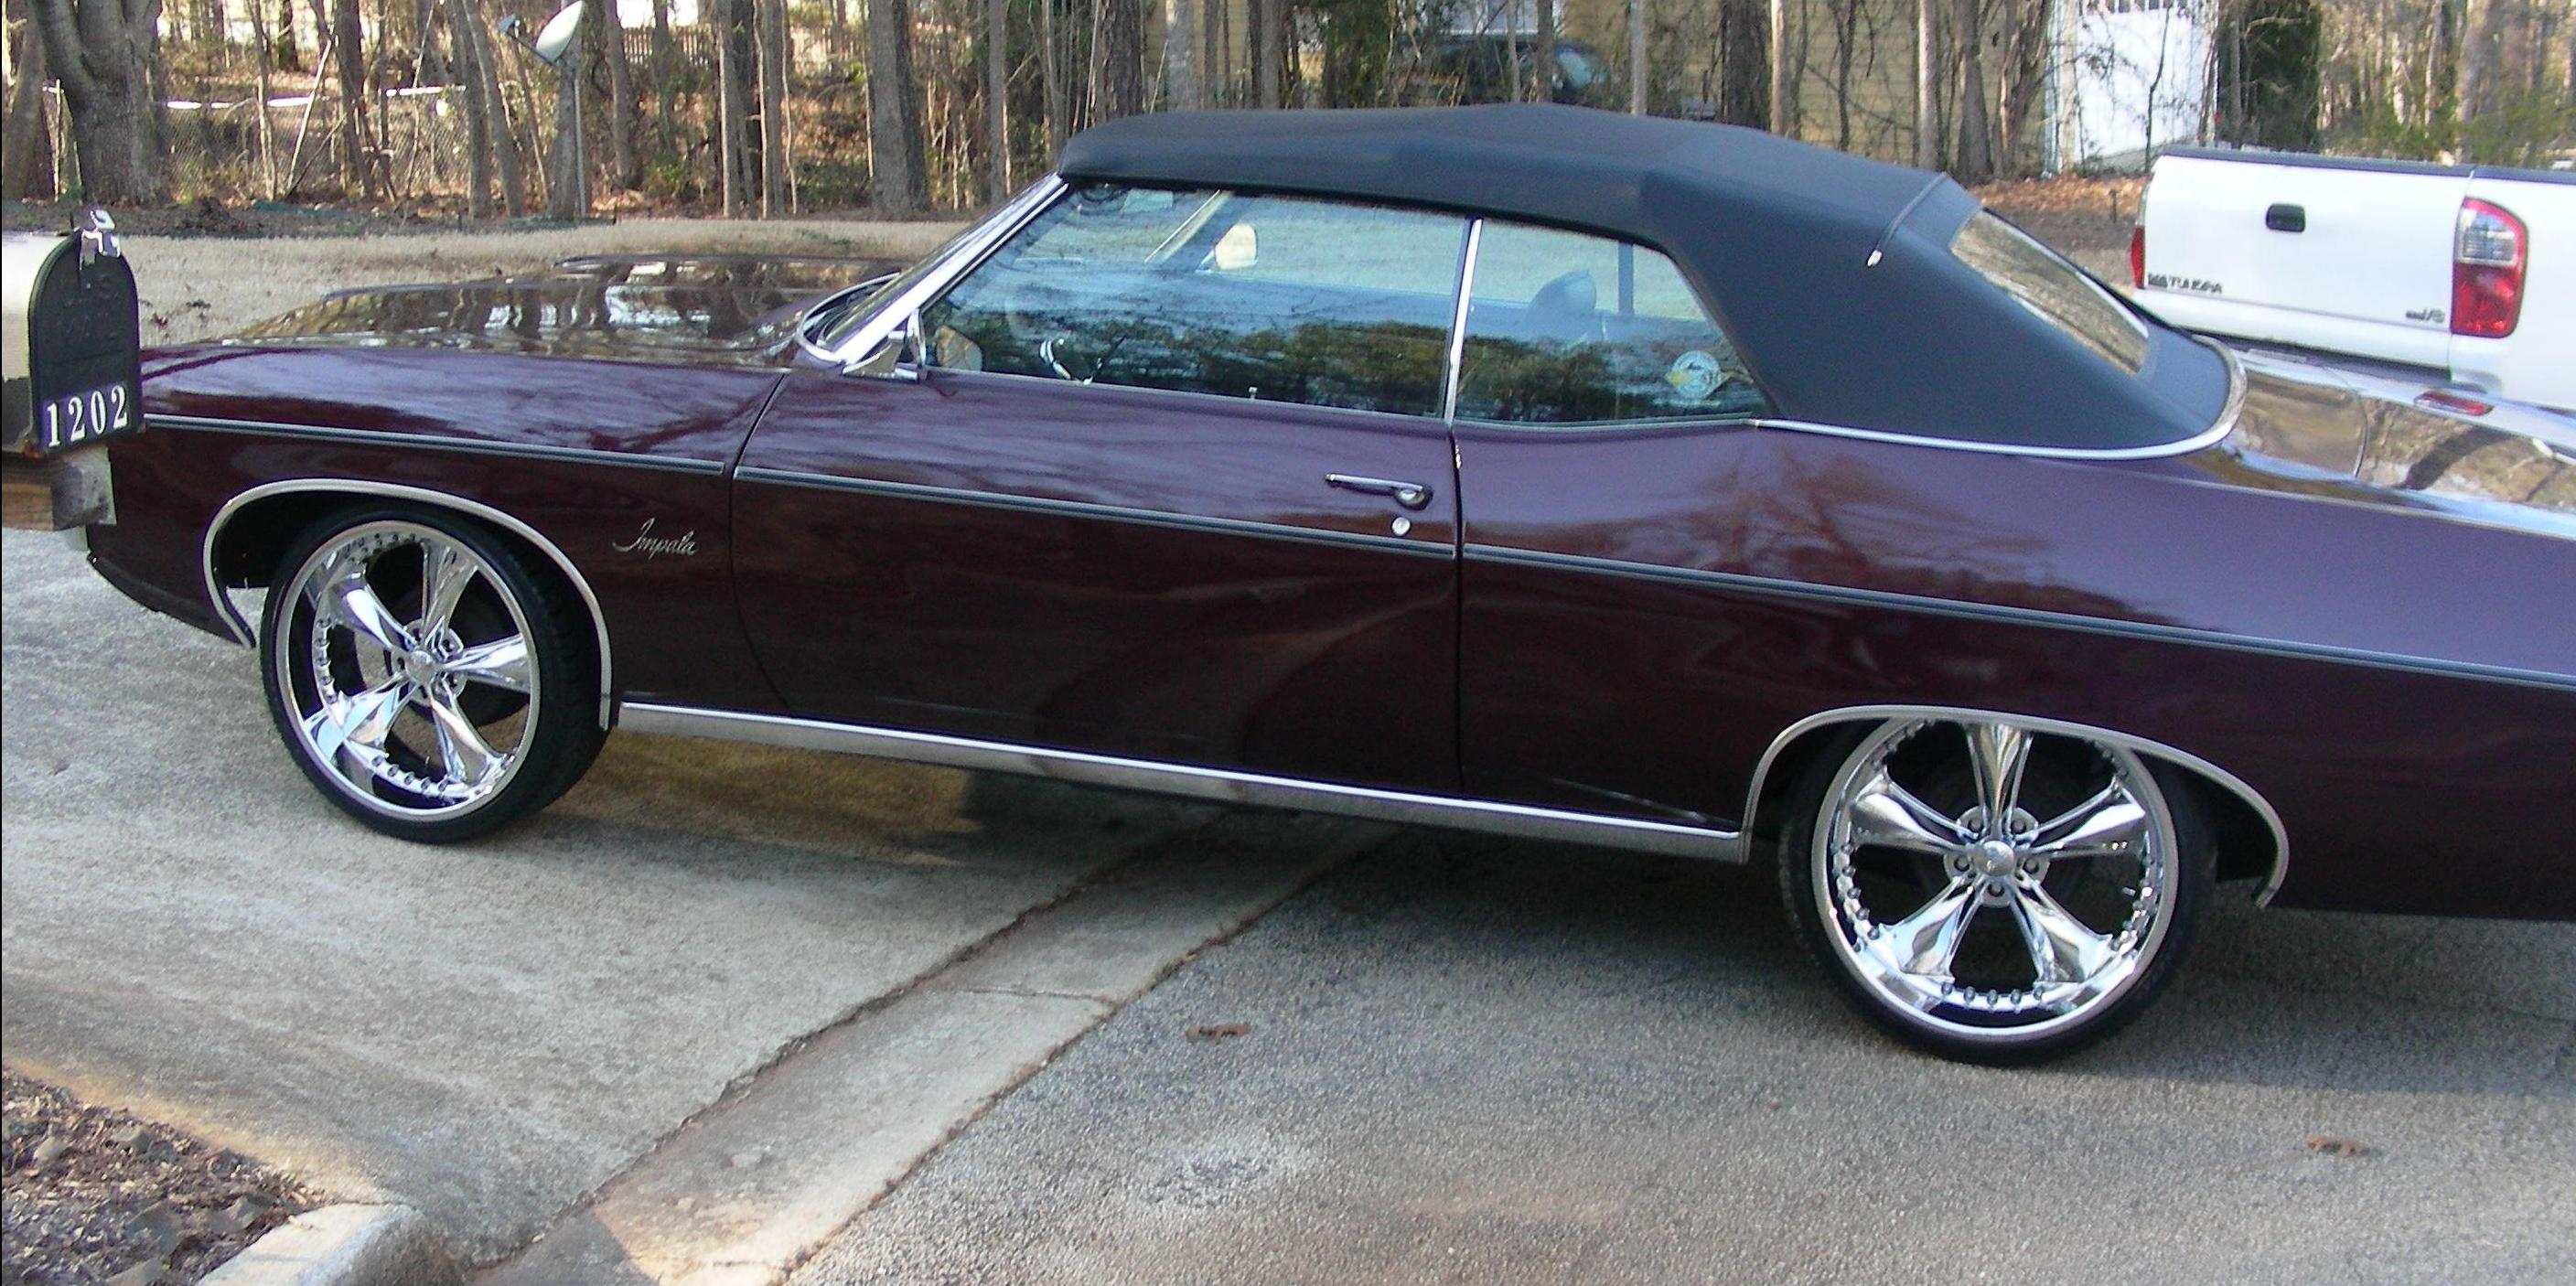 movingmann 1969 Chevrolet Impala Specs, Photos ...